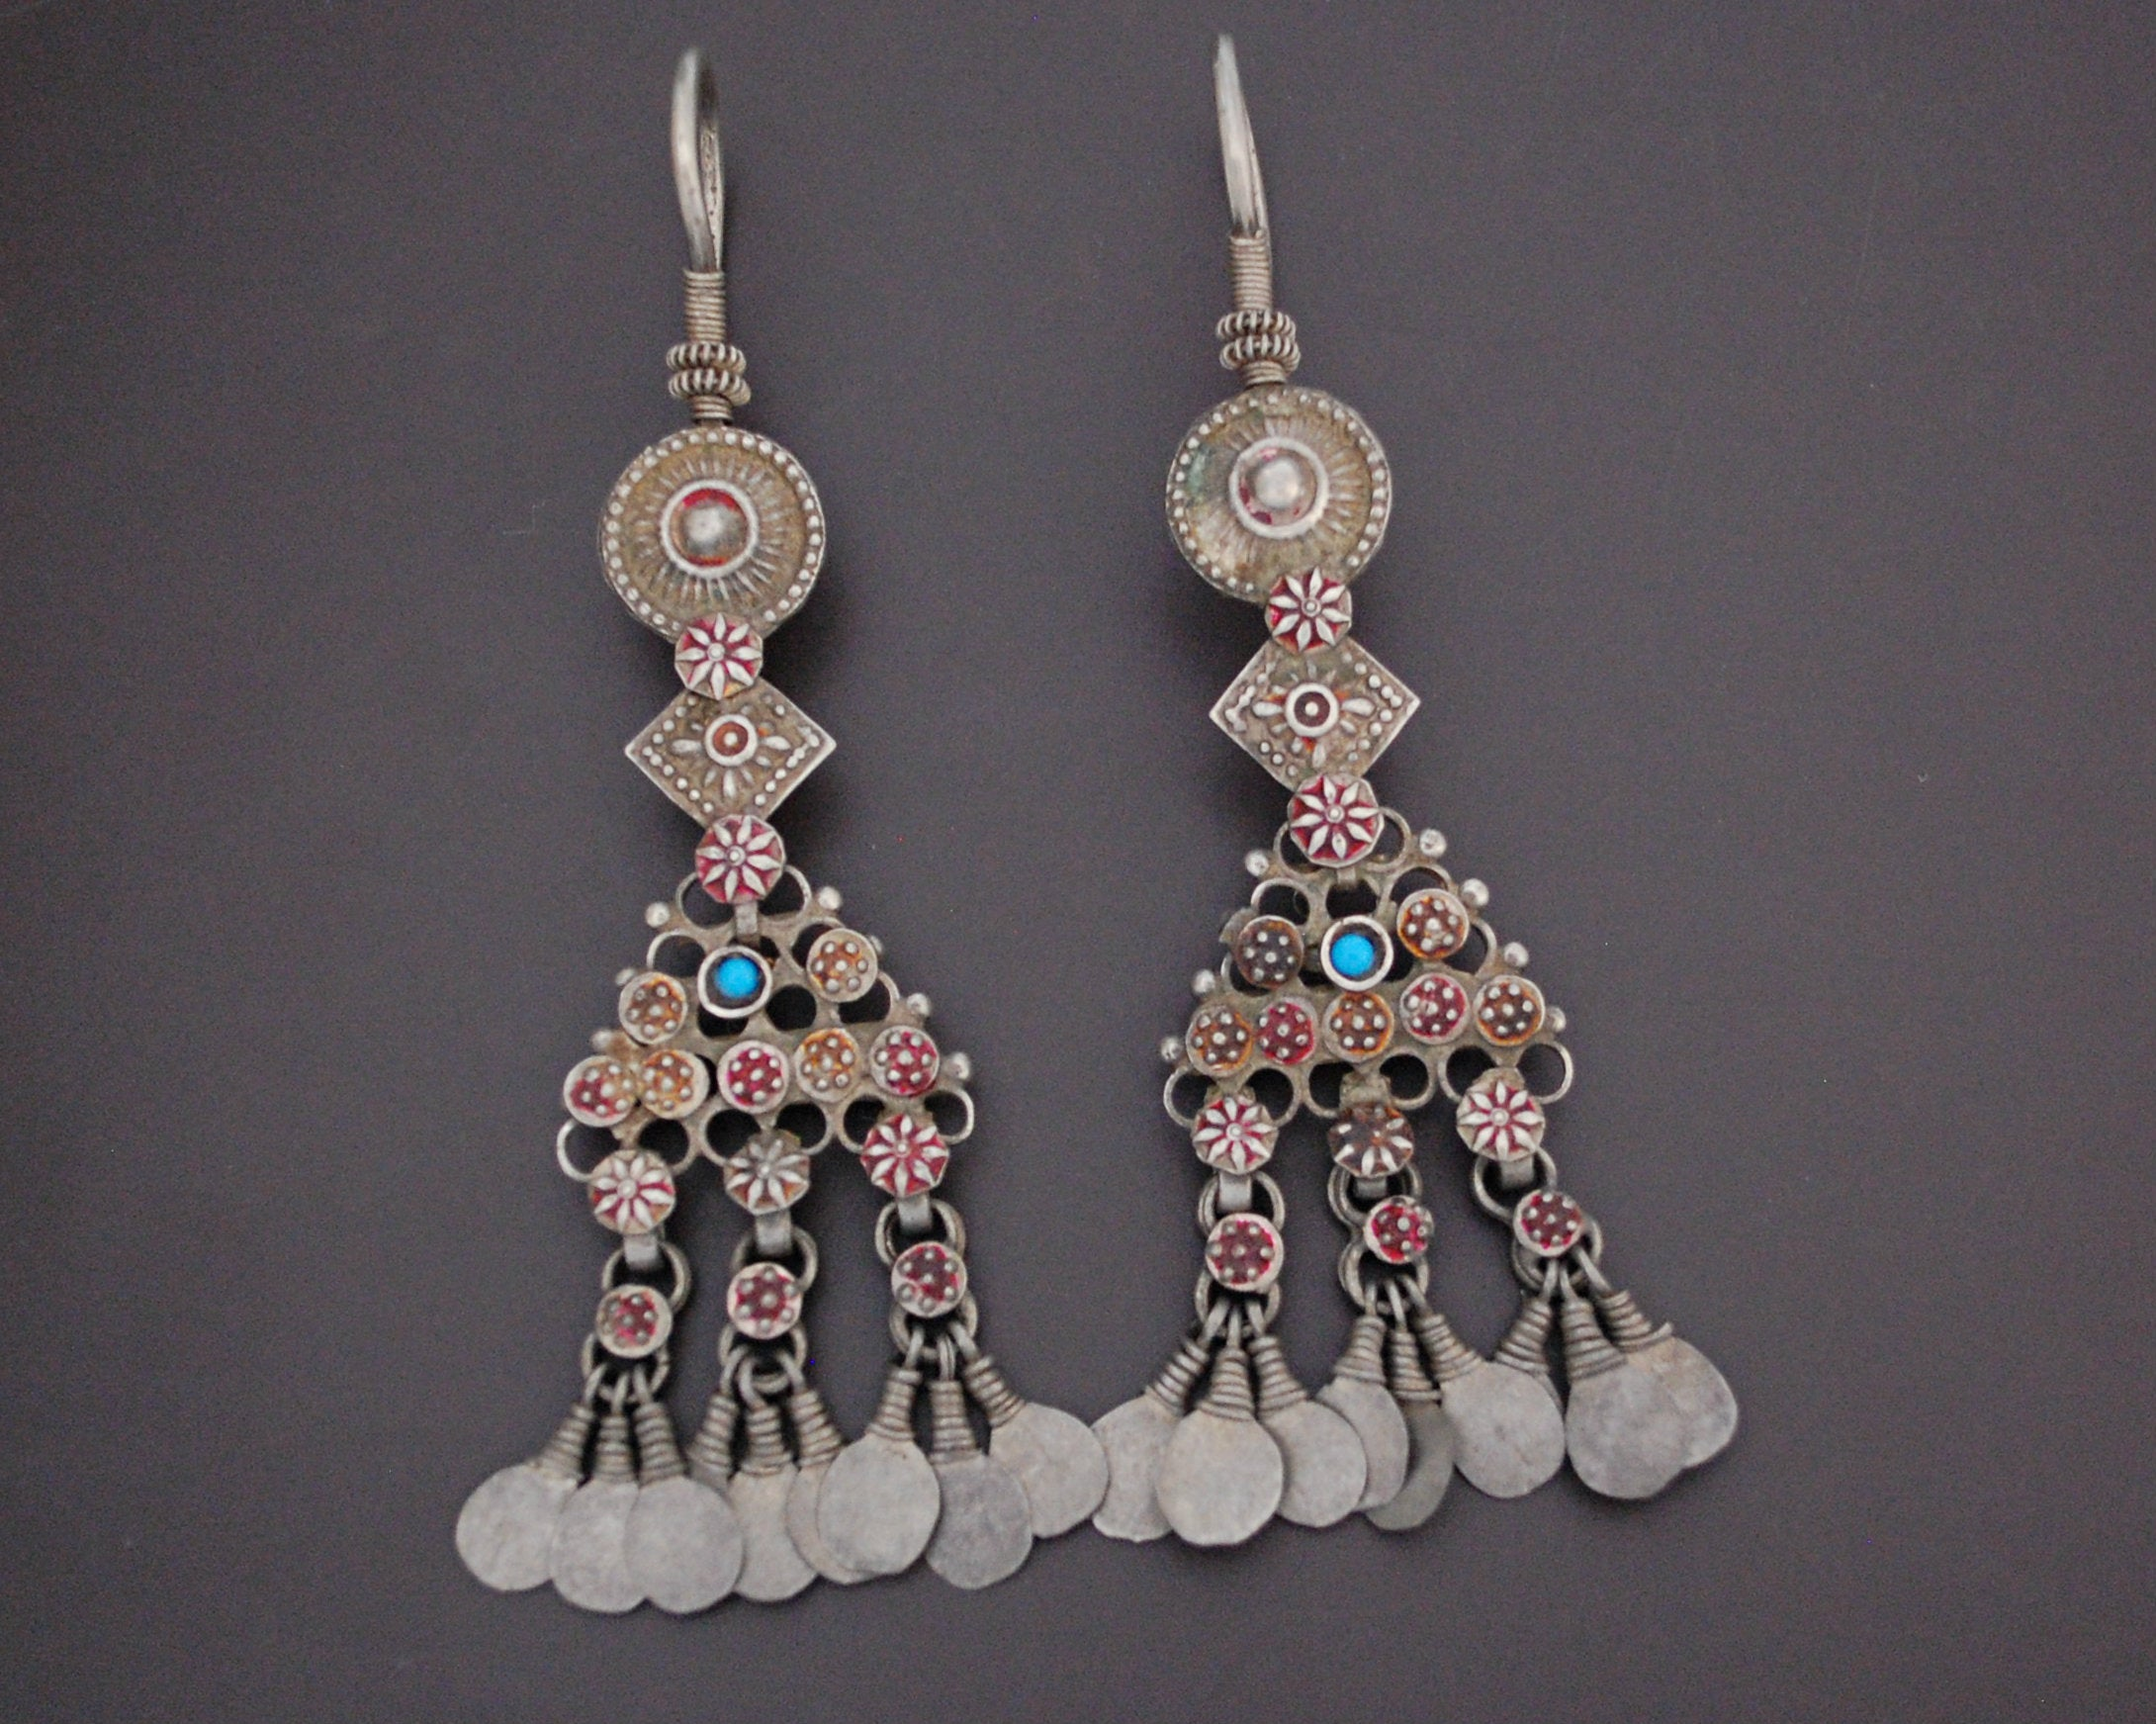 Large Antique Afghani Earrings with Turquoise